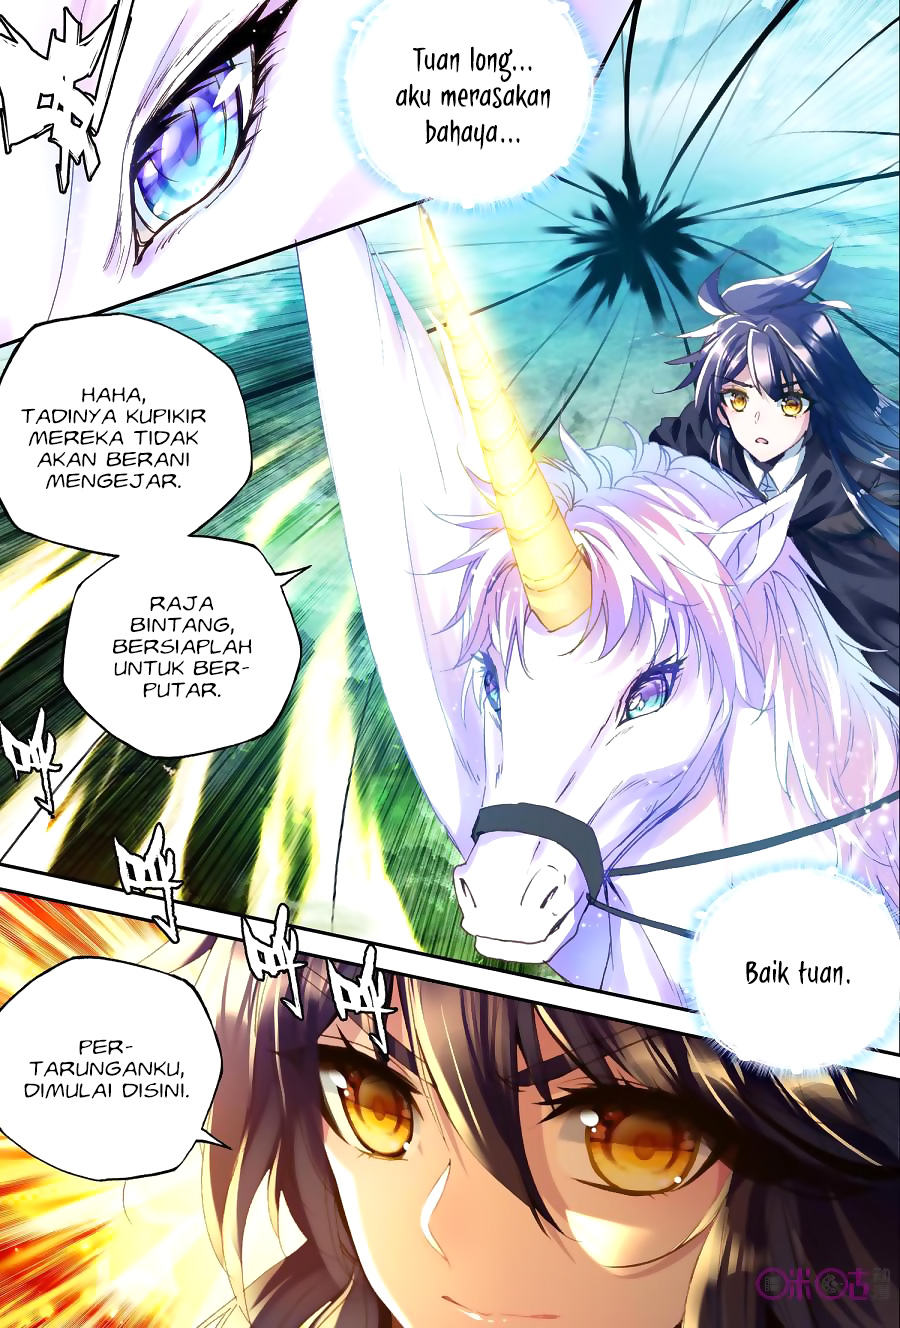 Komik shen yin wang zuo 152 - chapter 152 153 Indonesia shen yin wang zuo 152 - chapter 152 Terbaru 9|Baca Manga Komik Indonesia